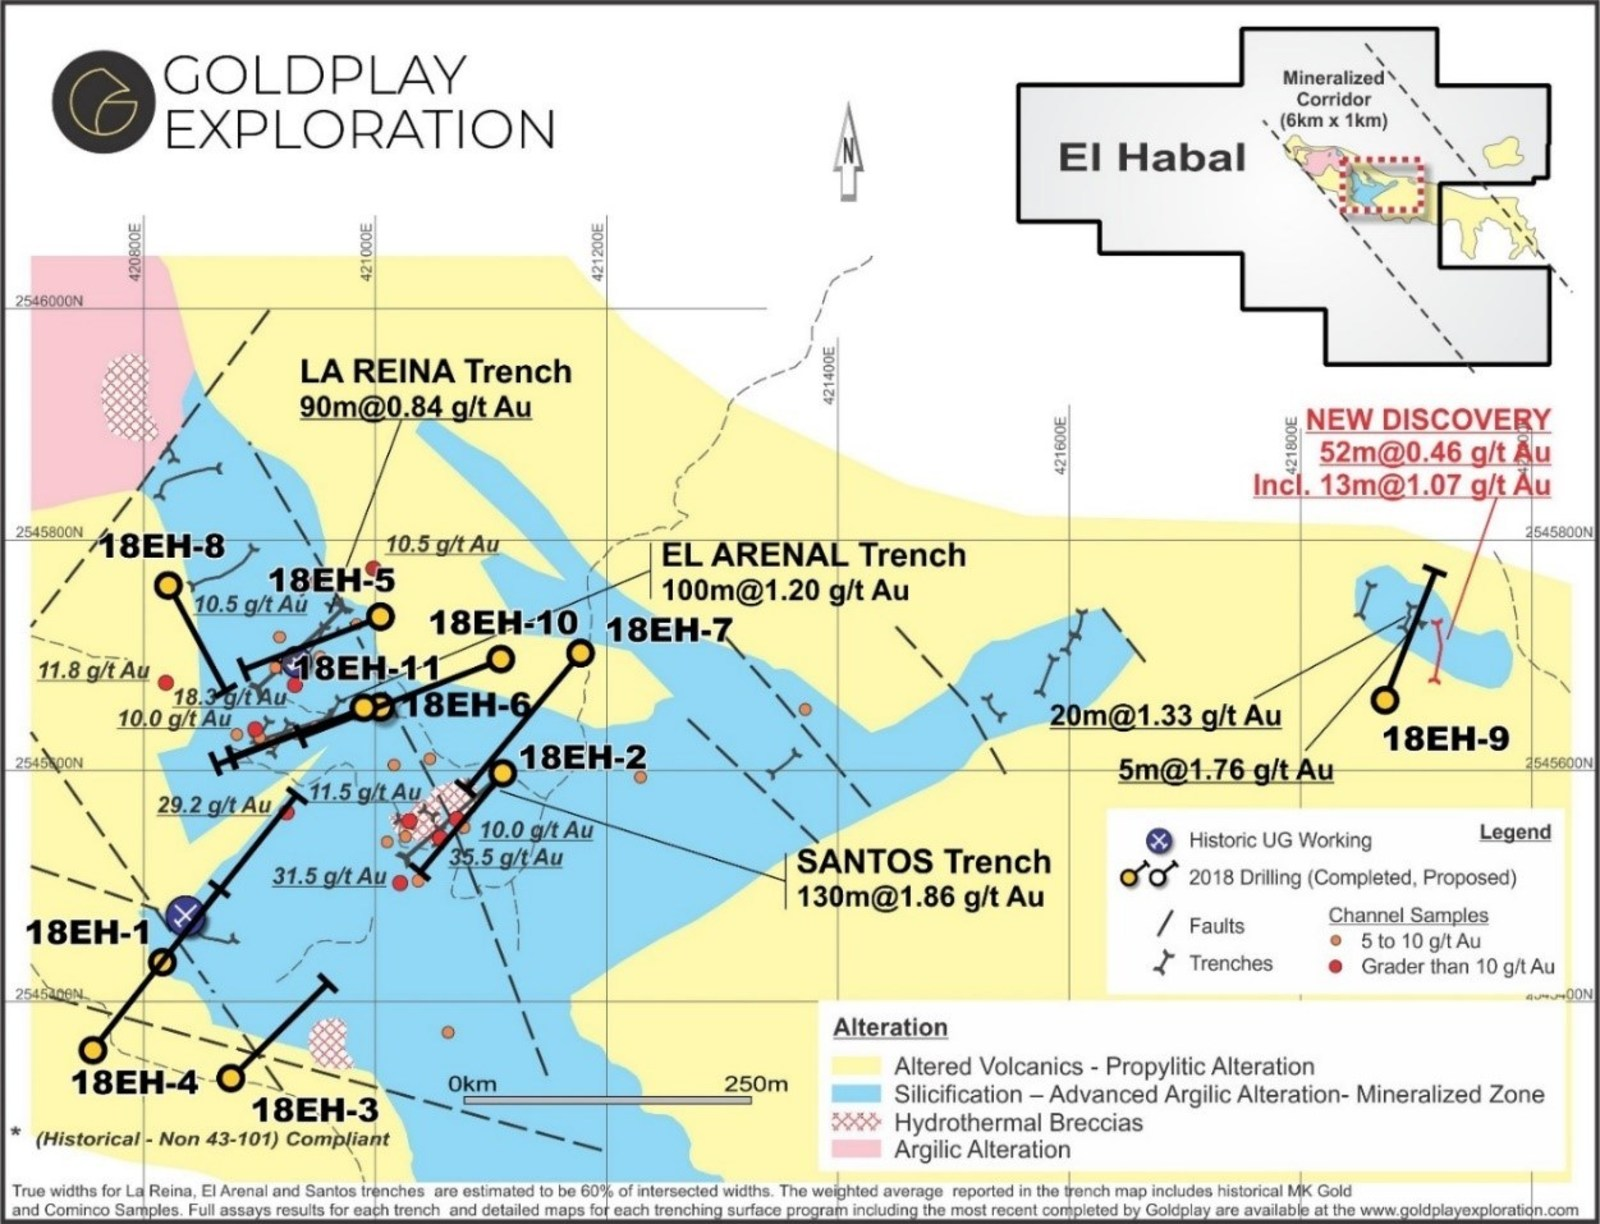 Figure 5: El Habal Project - Drill Hole Location and Geology Map